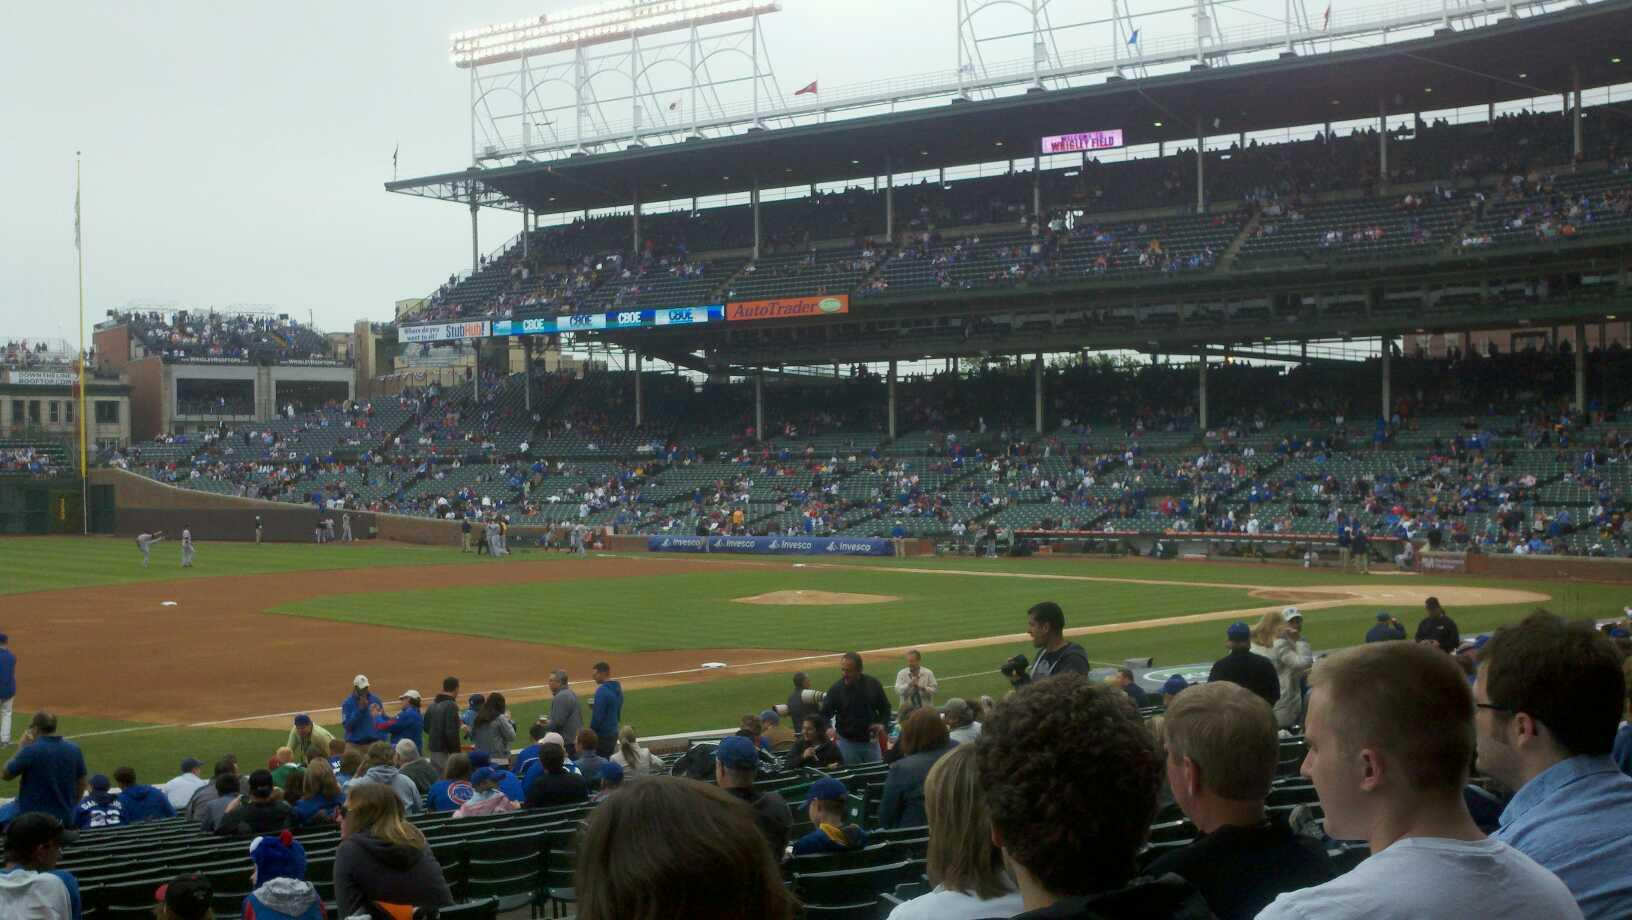 Wrigley Field Section 112 Row 9 Seat 7